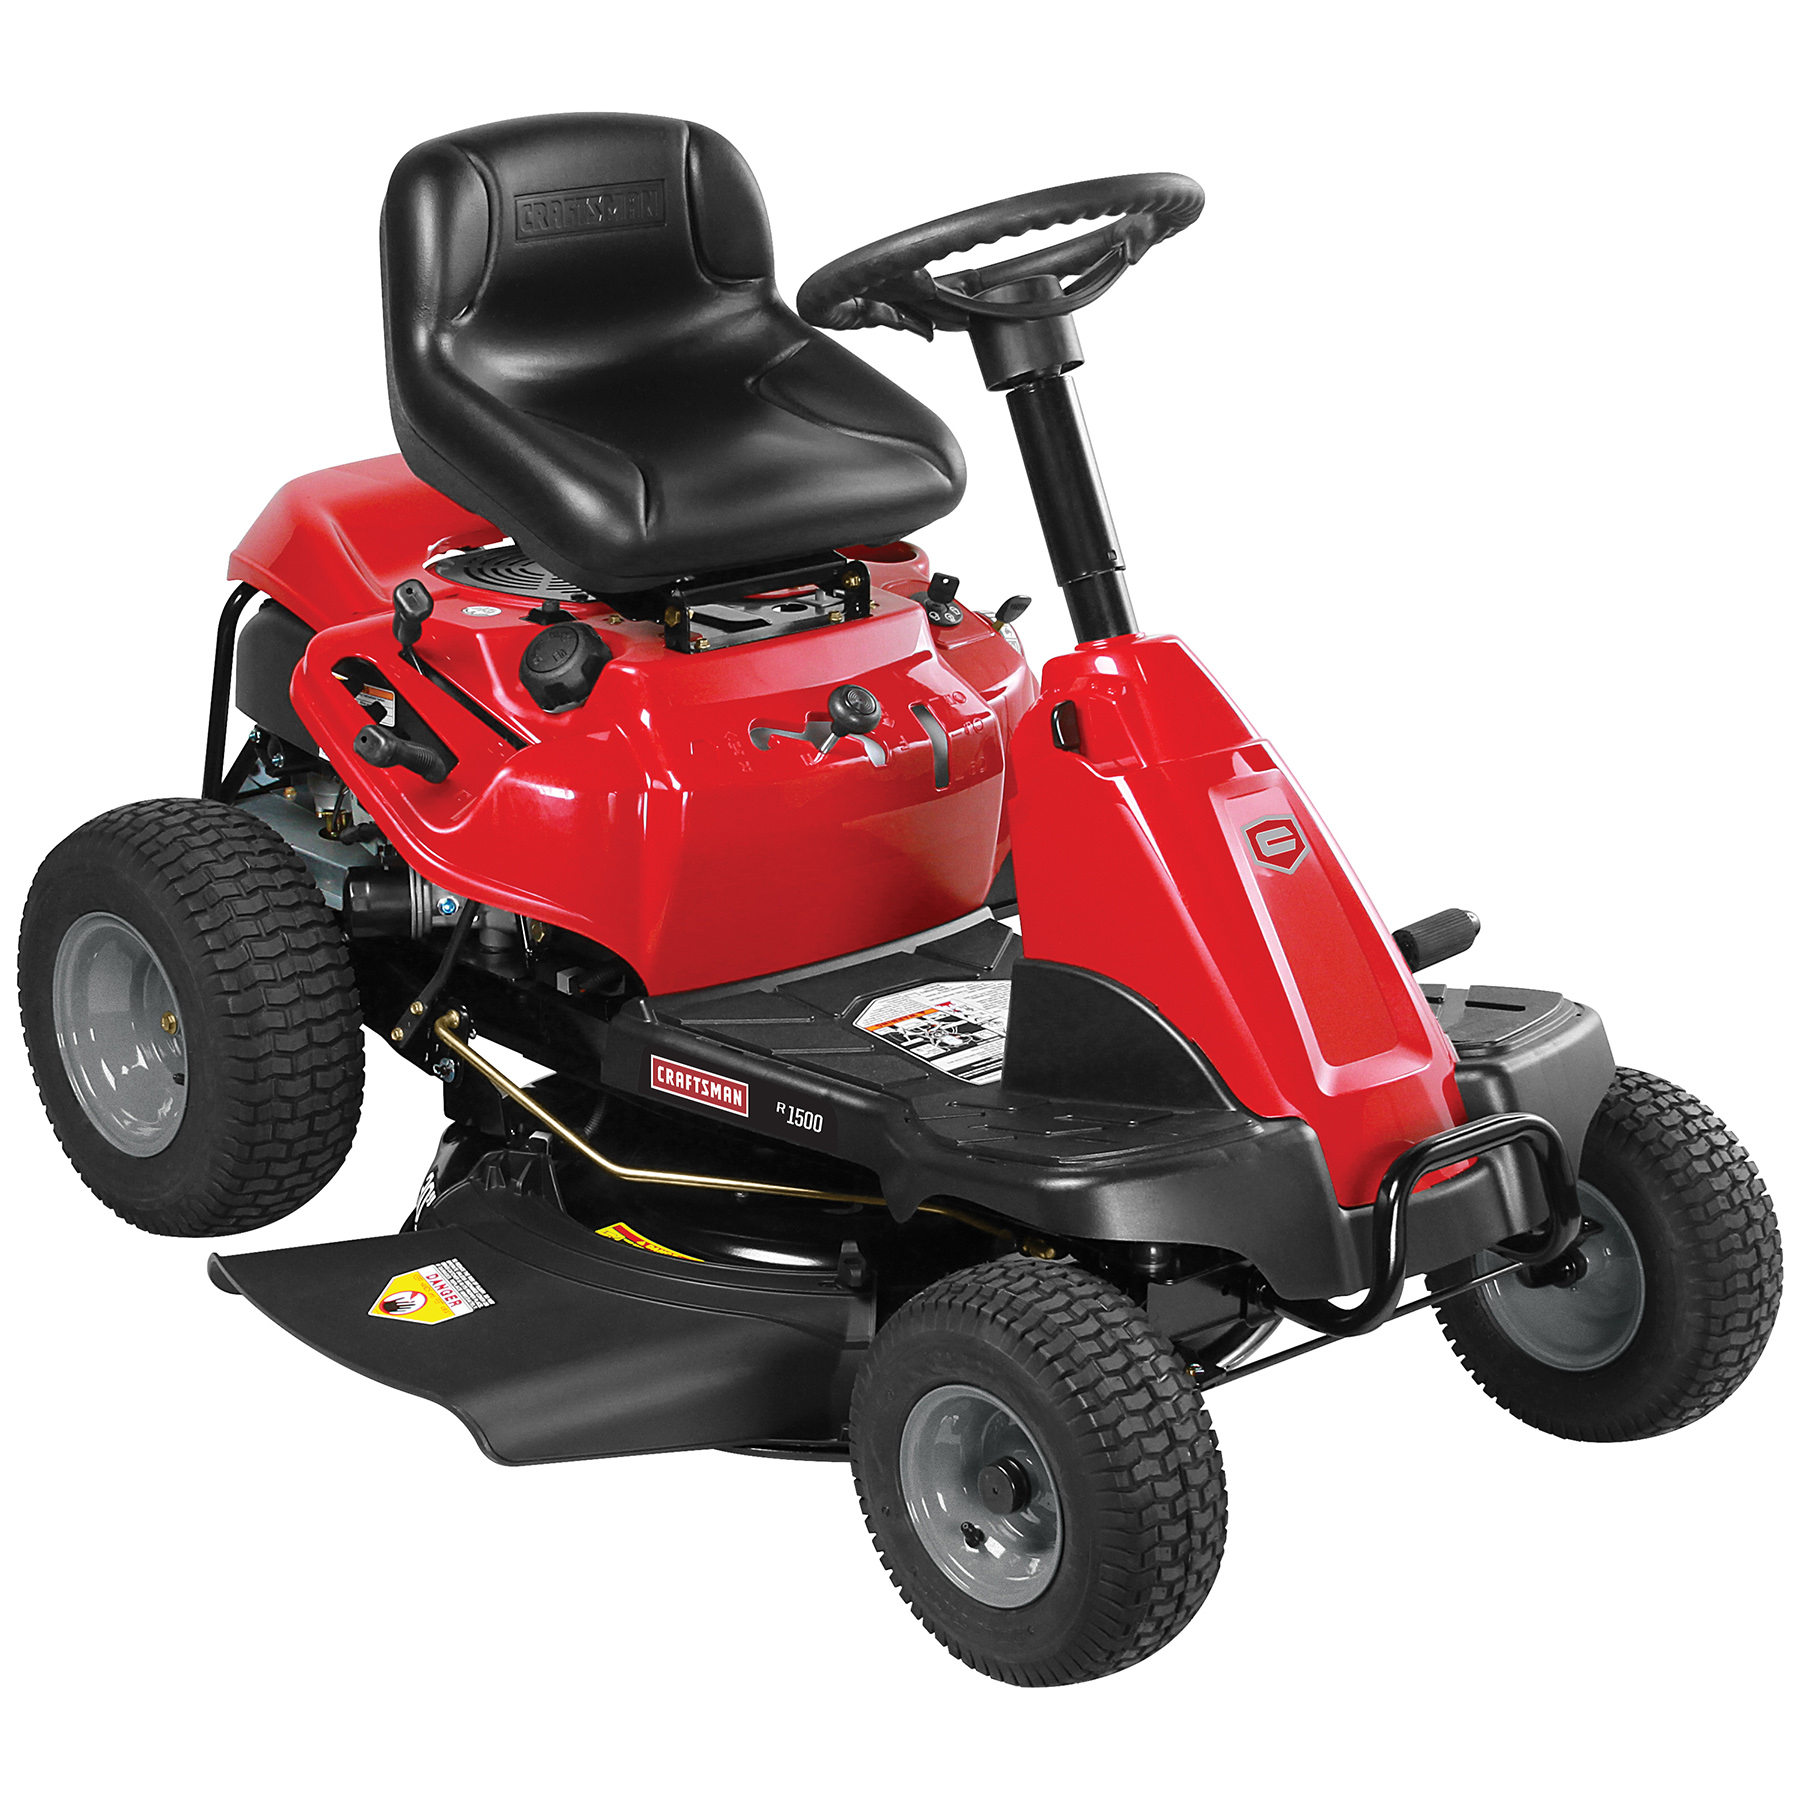 craftsman 29900 30 6 speed shift on the go rear engine riding mower w mulch kit [ 1800 x 1800 Pixel ]